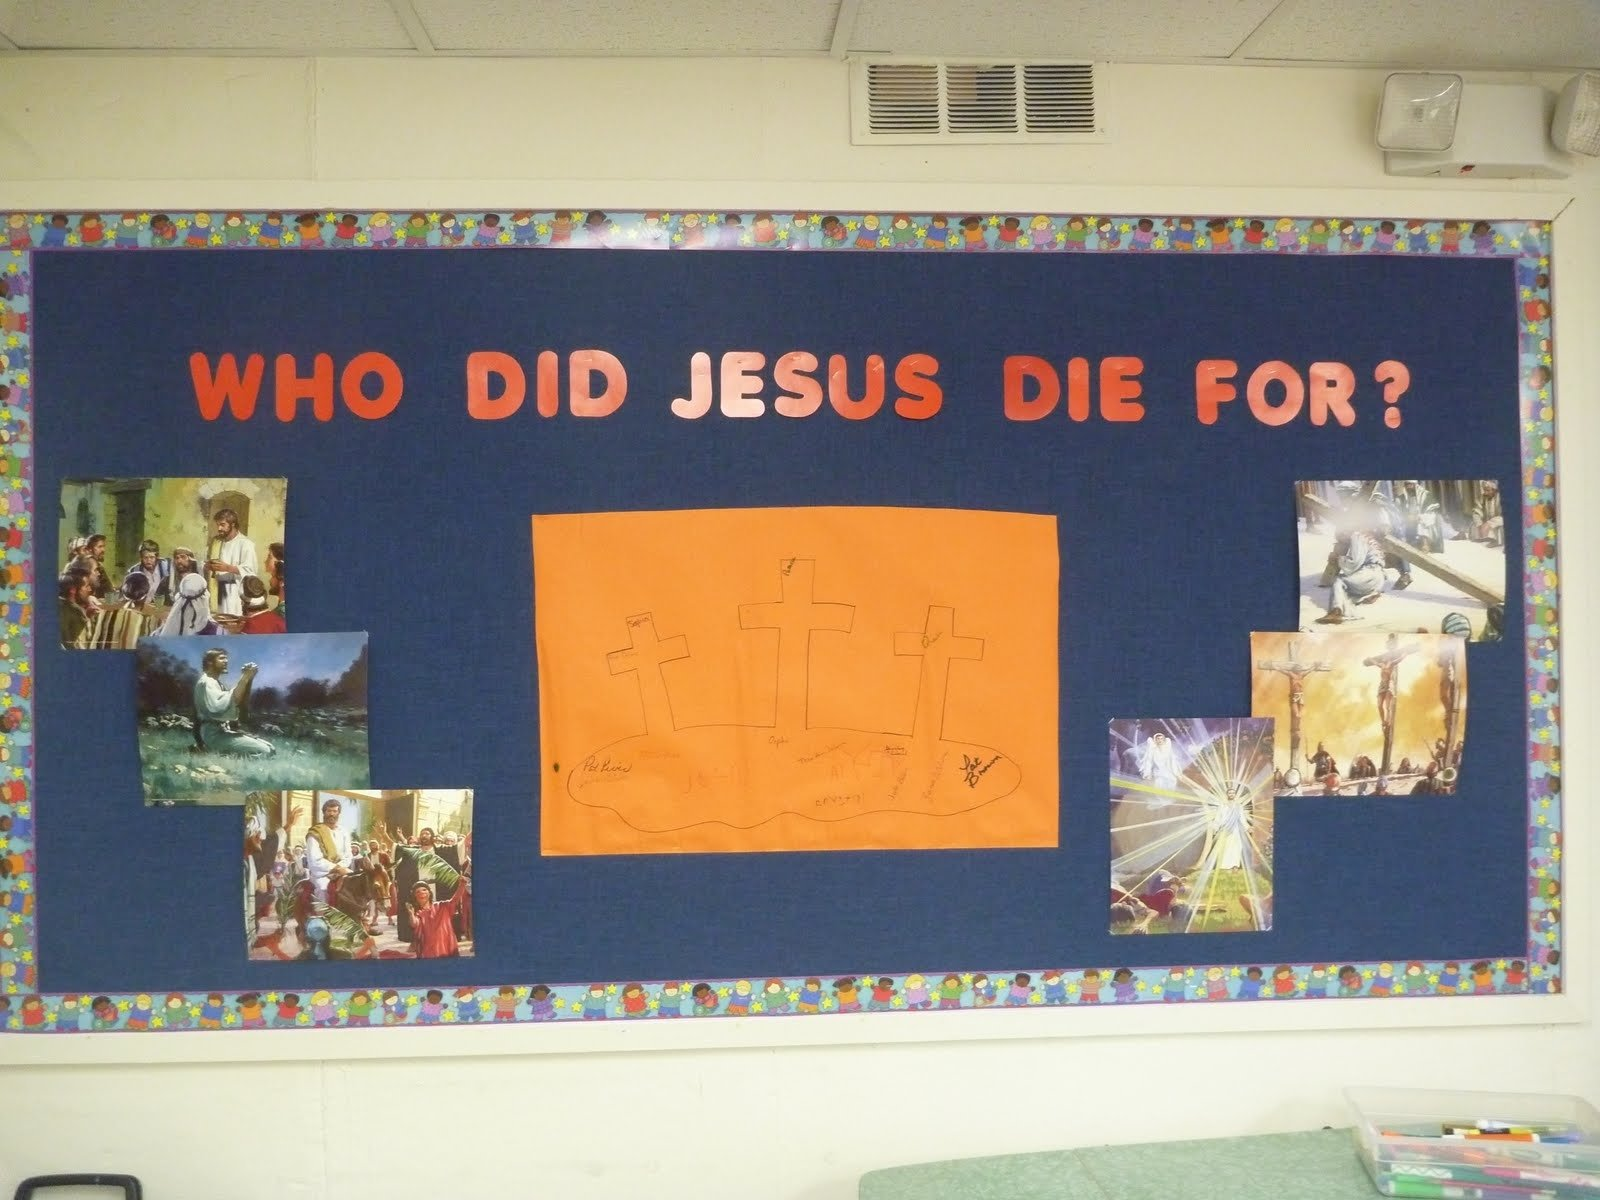 10 Most Recommended Easter Bulletin Board Ideas For Church outside the box easter week bulletin board 2020